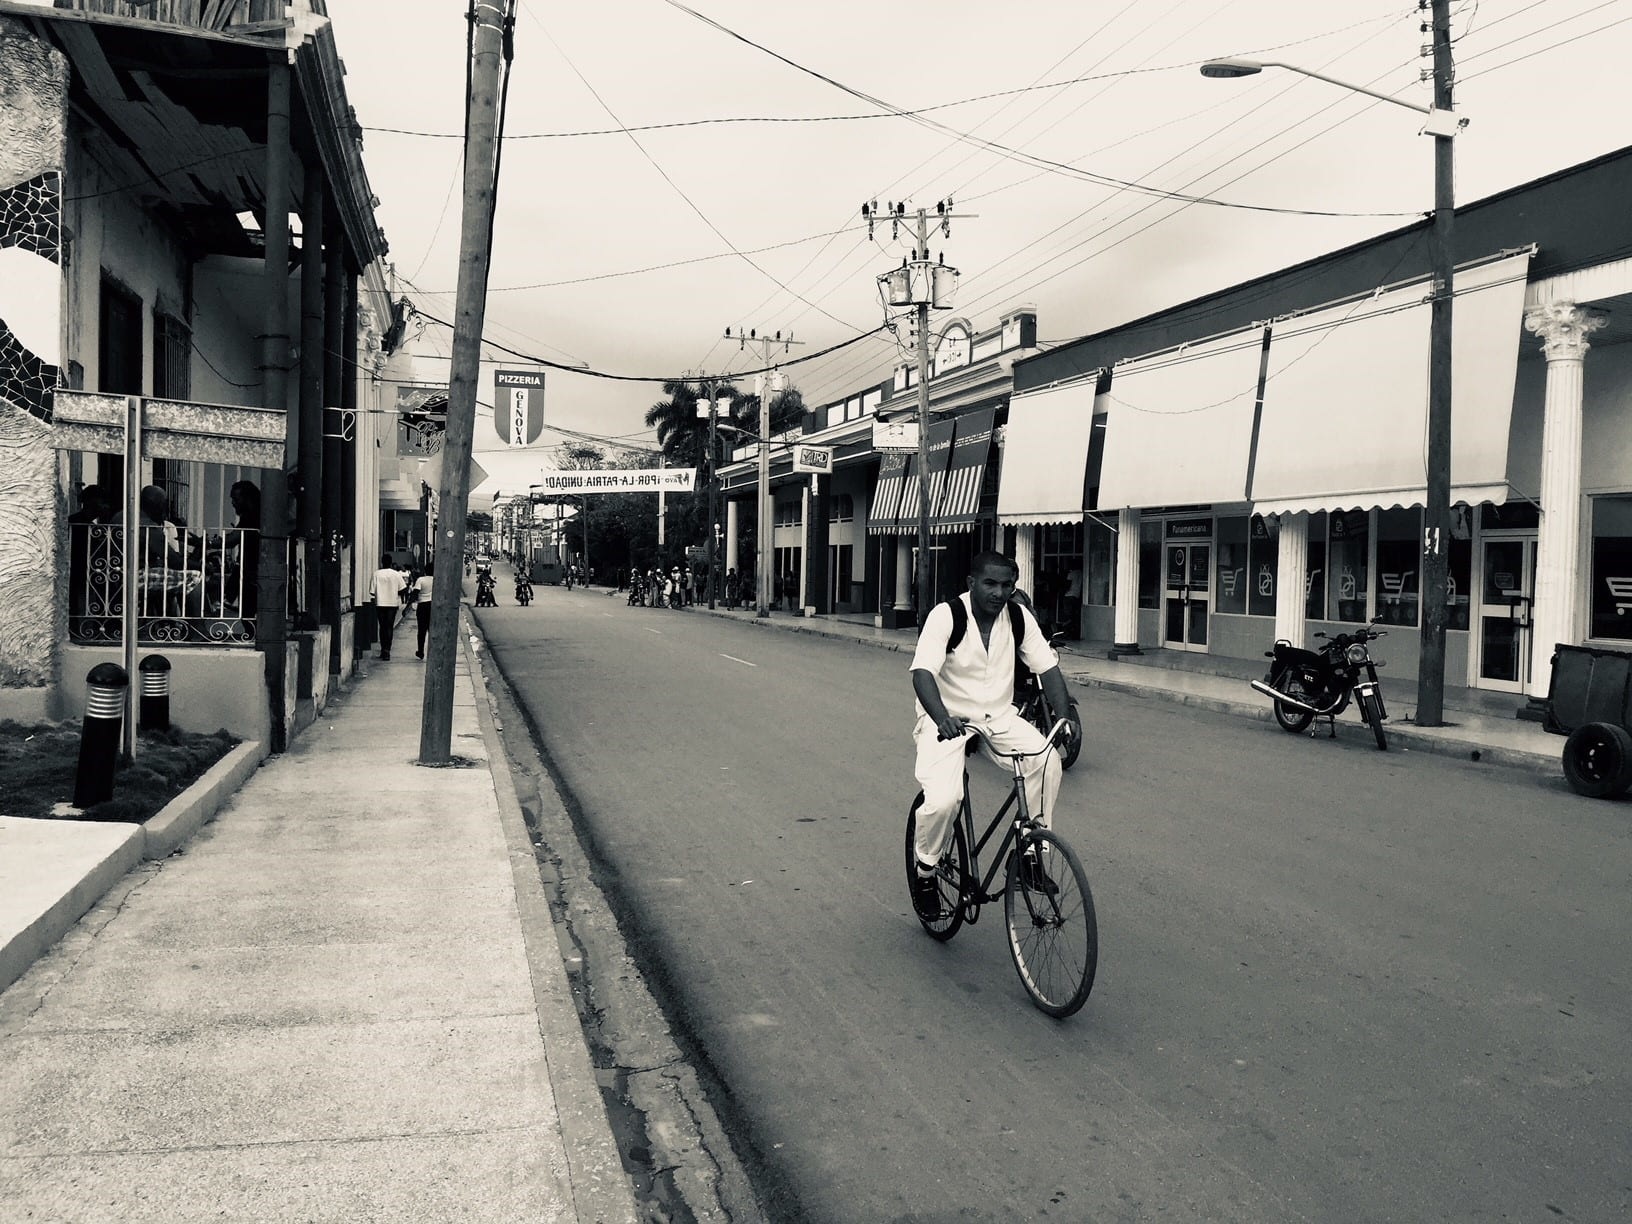 Blakc and white photo of person riding bicycle in middle of street in Havana, Cuba